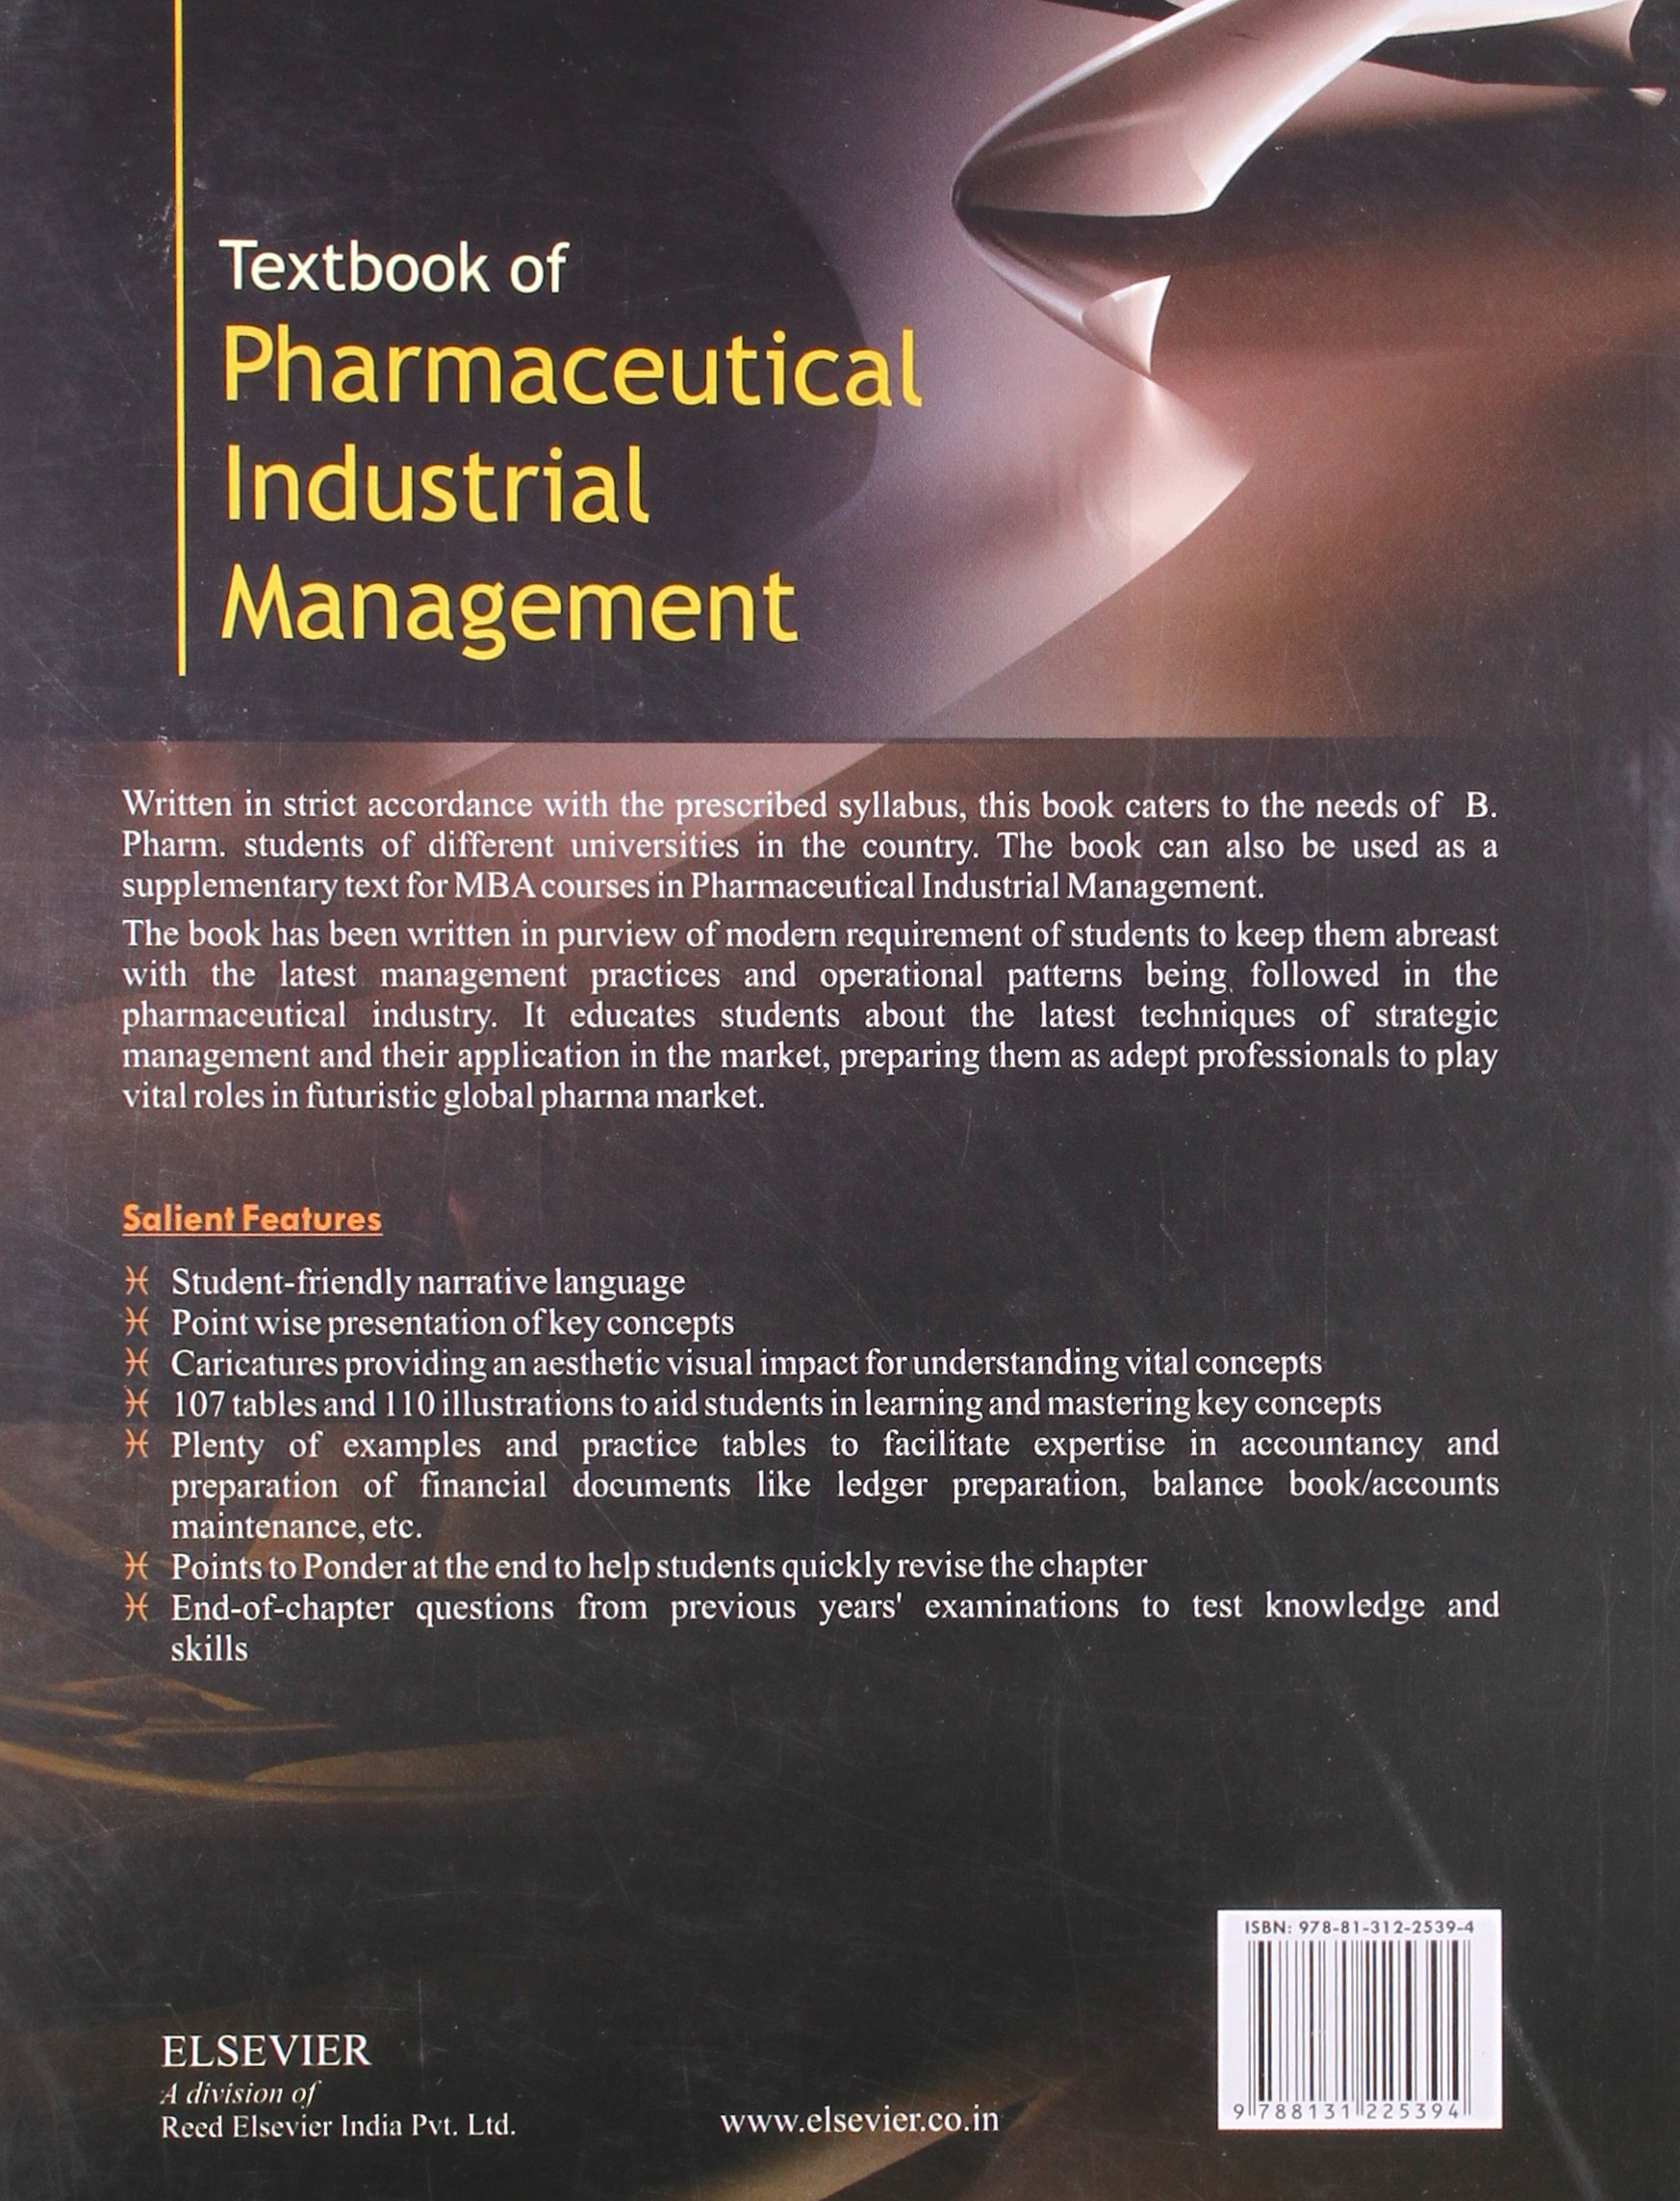 A Textbook of Pharmaceutical Industrial Management